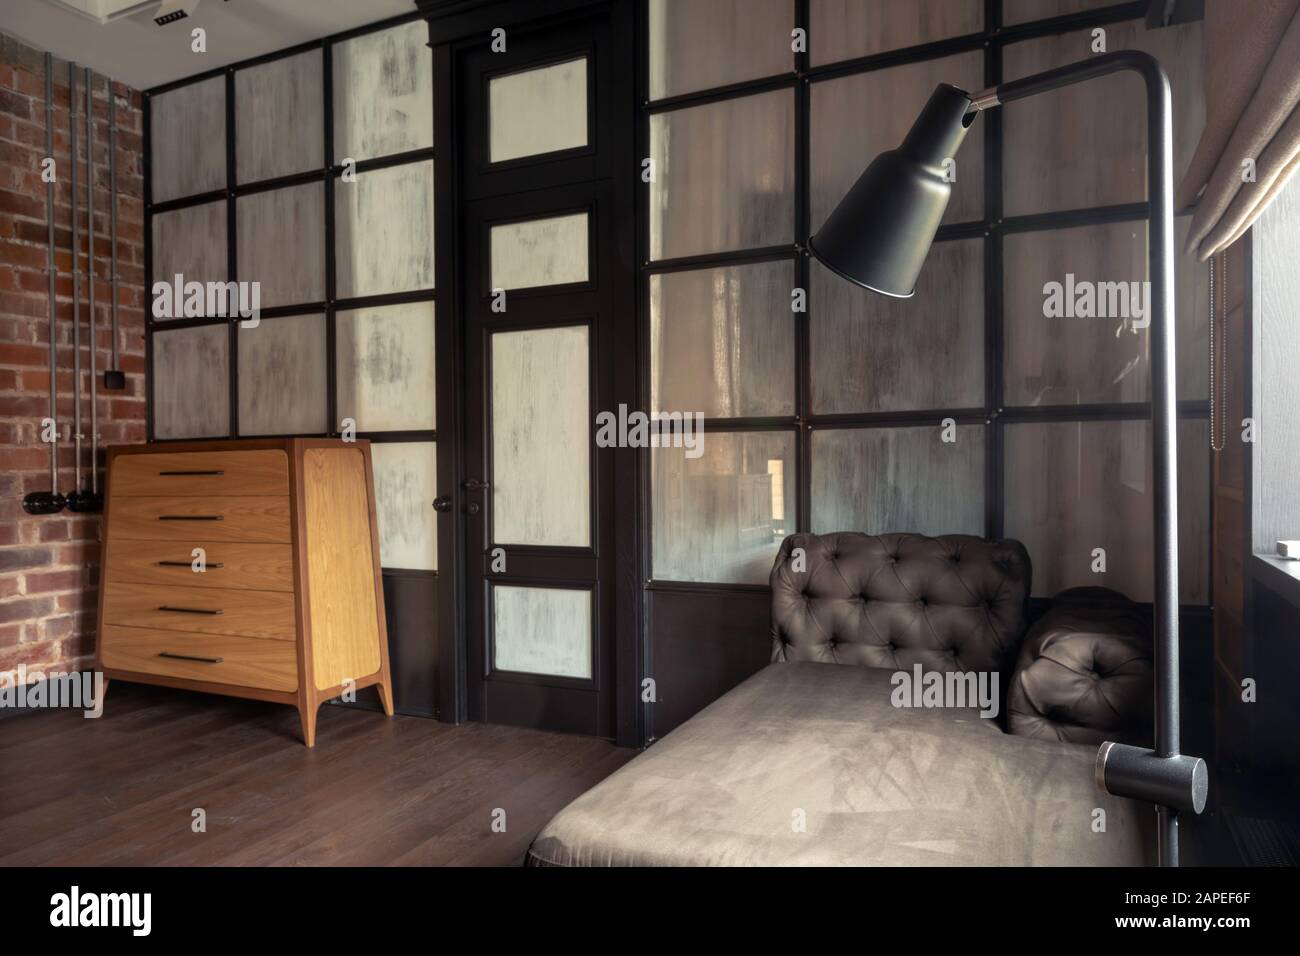 Trendy Modern Interior Design Of Living Room With Glass Partition In Flat Stock Photo Alamy